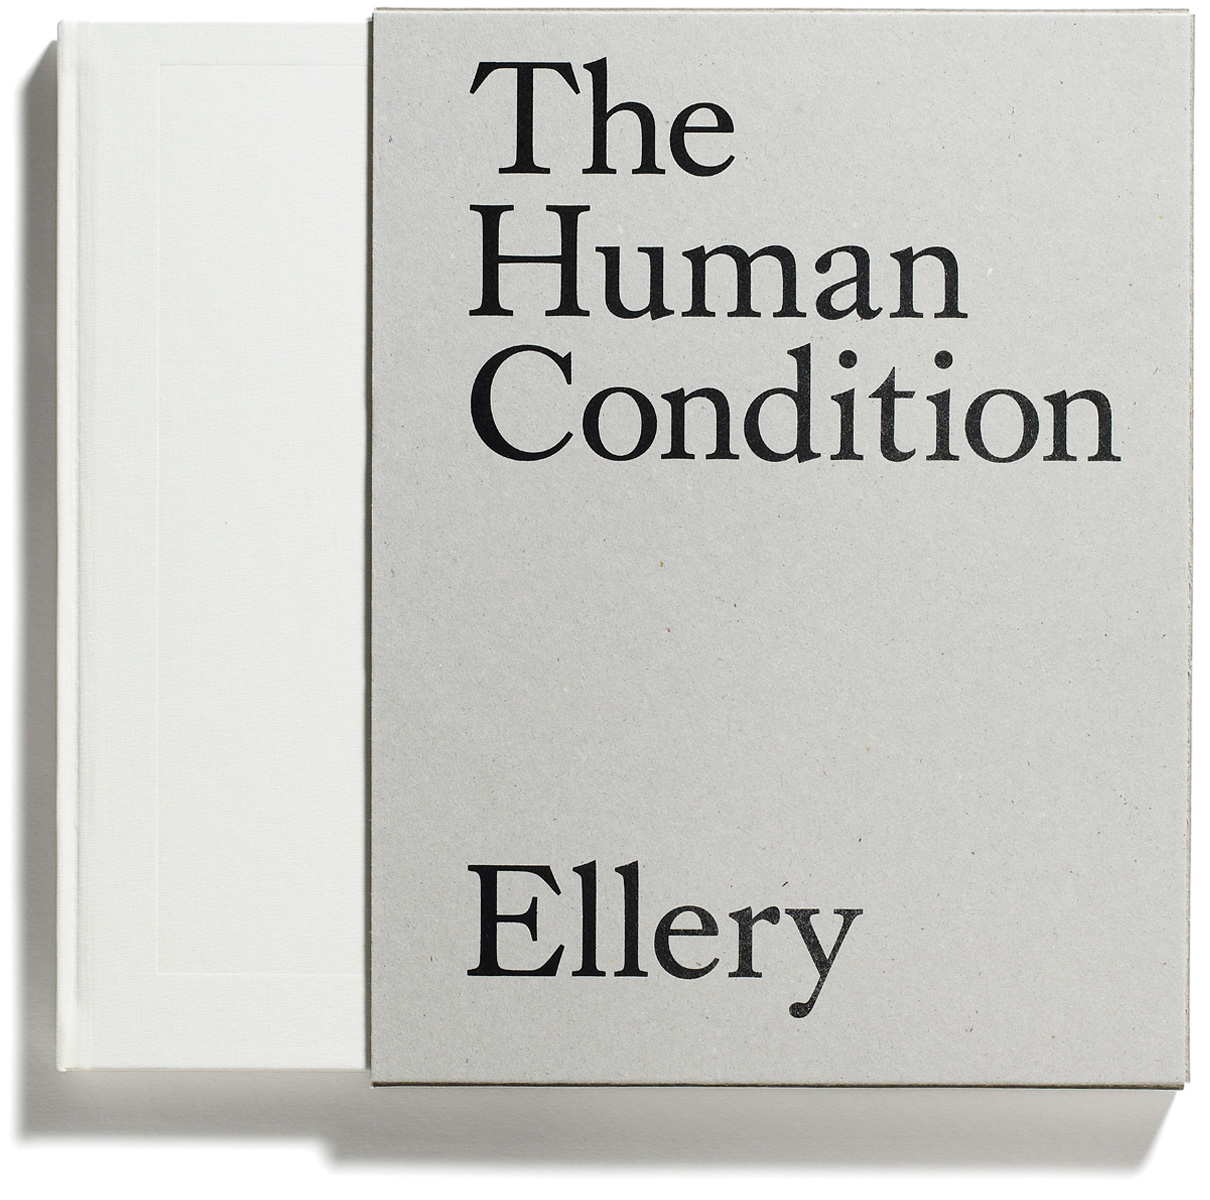 Browns Editions, Browns Editions Publishing, Browns Editions Books, Browns Editions Jonathan Ellery, Browns Editions The Human Condition, Browns Editions Jonathan Ellery The Human Condition